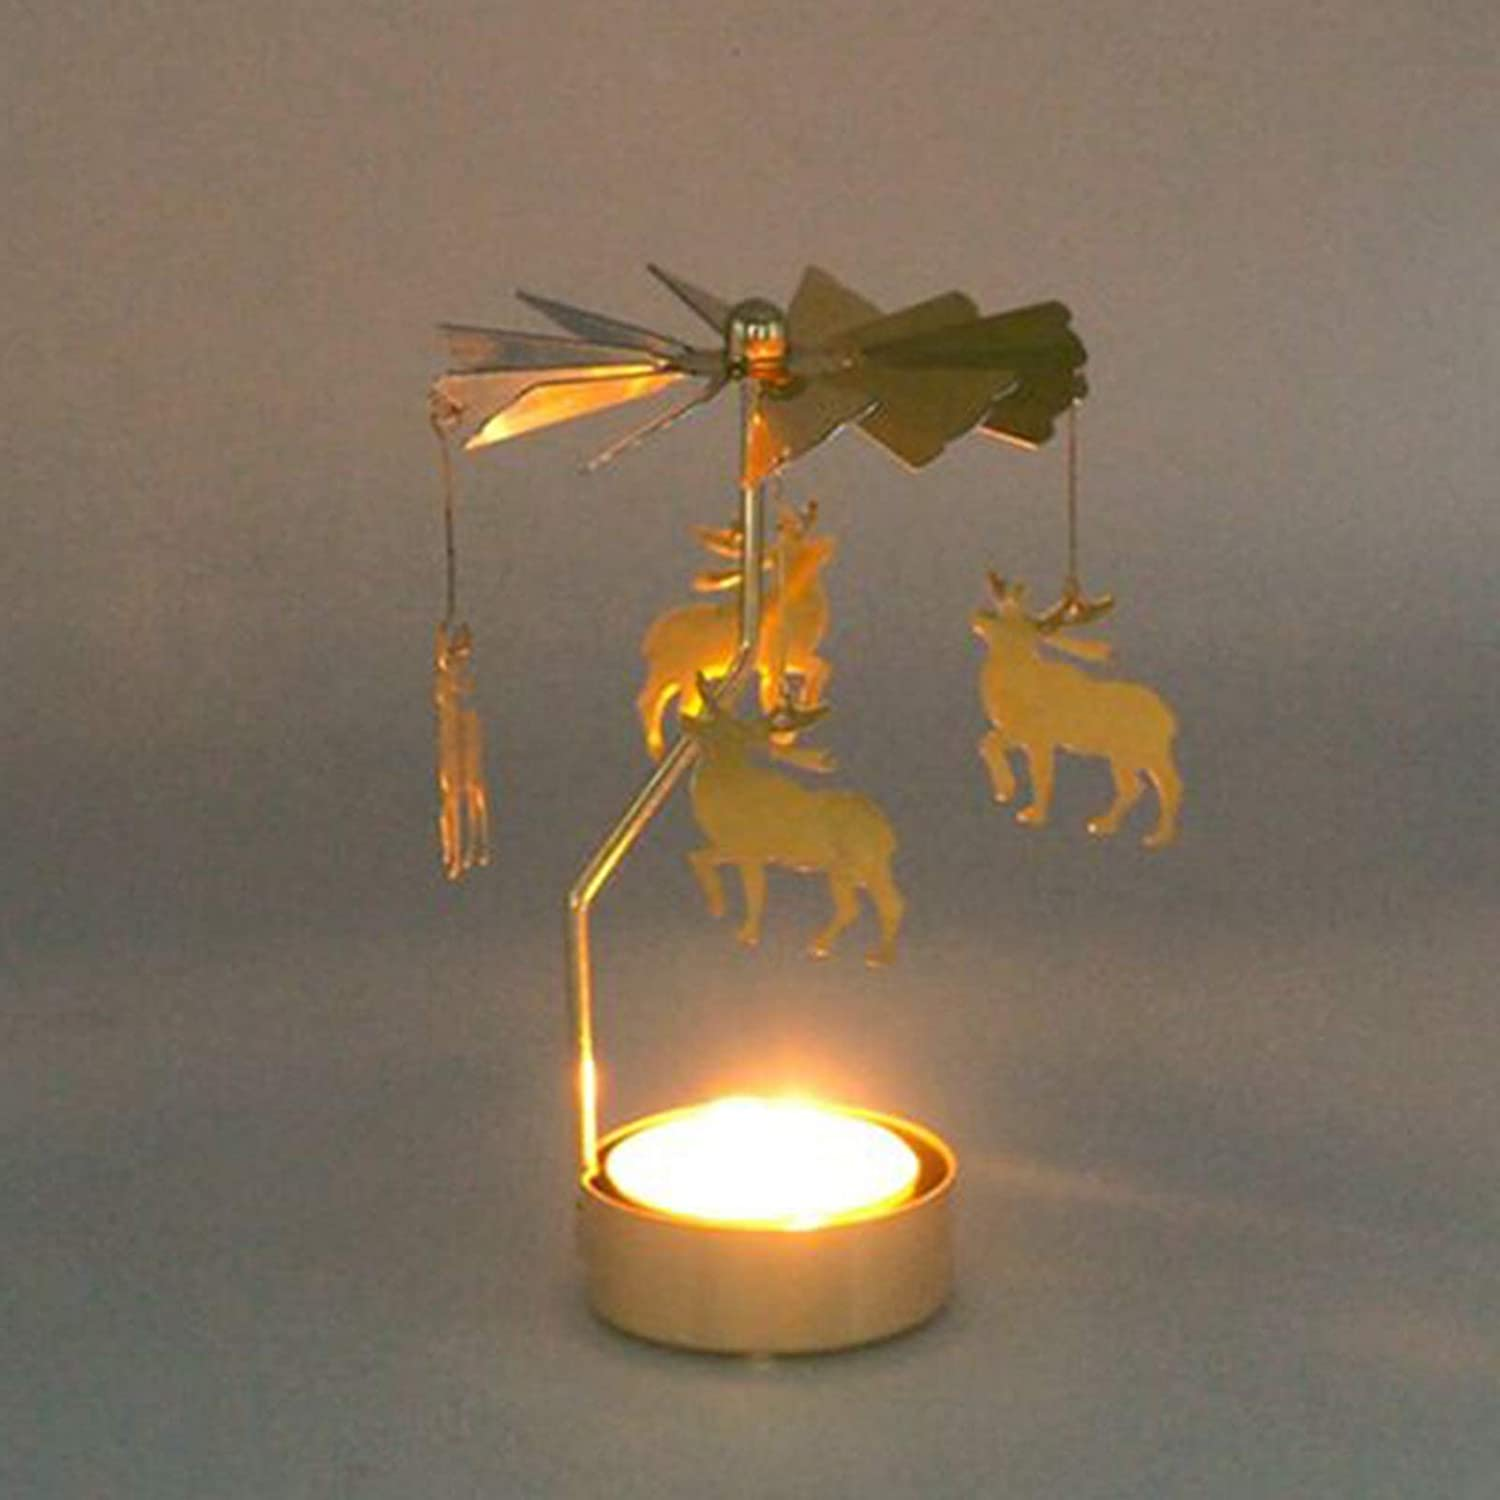 AKlamater Rotary Tea Light Carousel #1 spinning candle holder Thermal rotation Windmill Candlesticks for Living Room wedding ceremony office Christmas Dinning Decoration